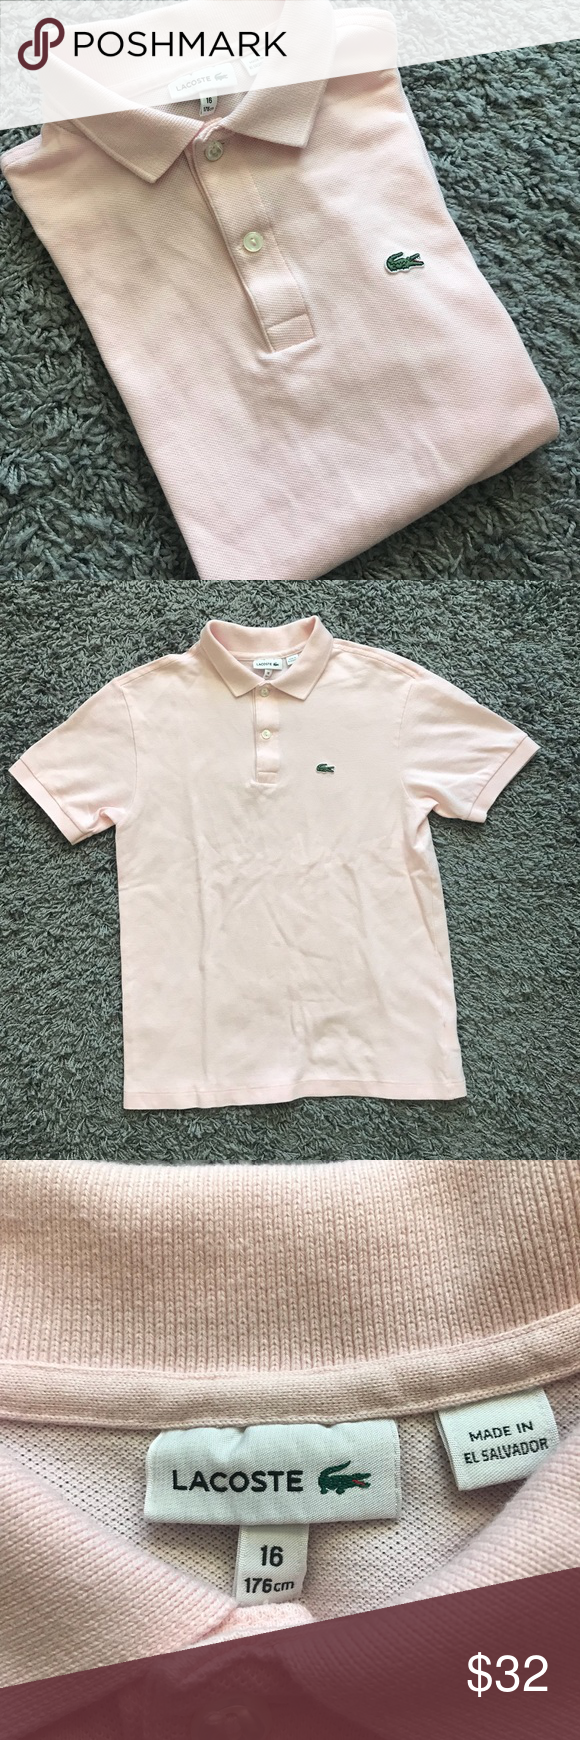 Womens Lacoste Pink Alligator Logo Polo Shirt 16 Lacoste Pink